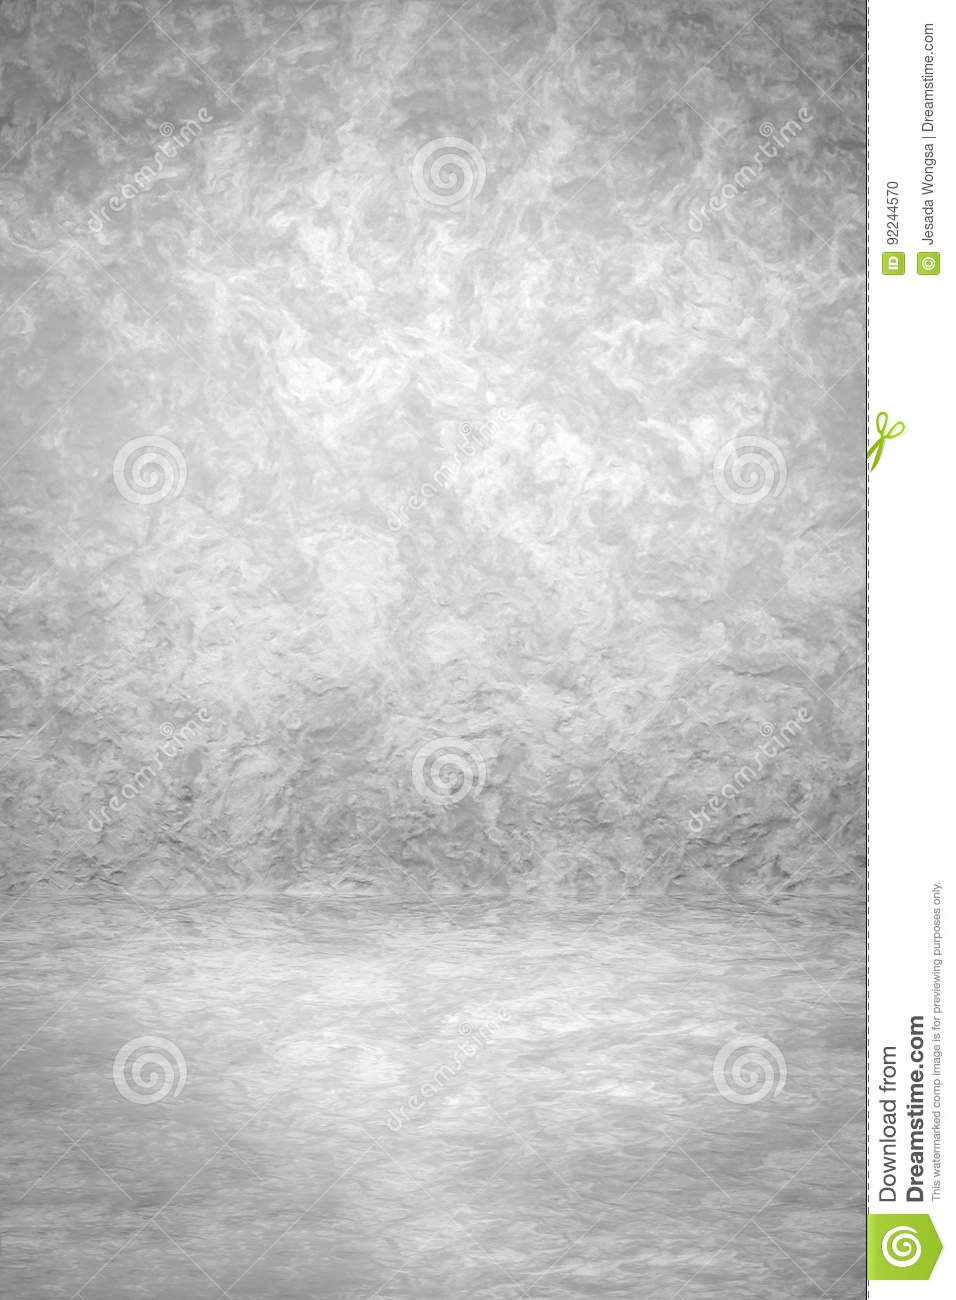 Grunge Black And White Studio Backdrop With Space For Vintage